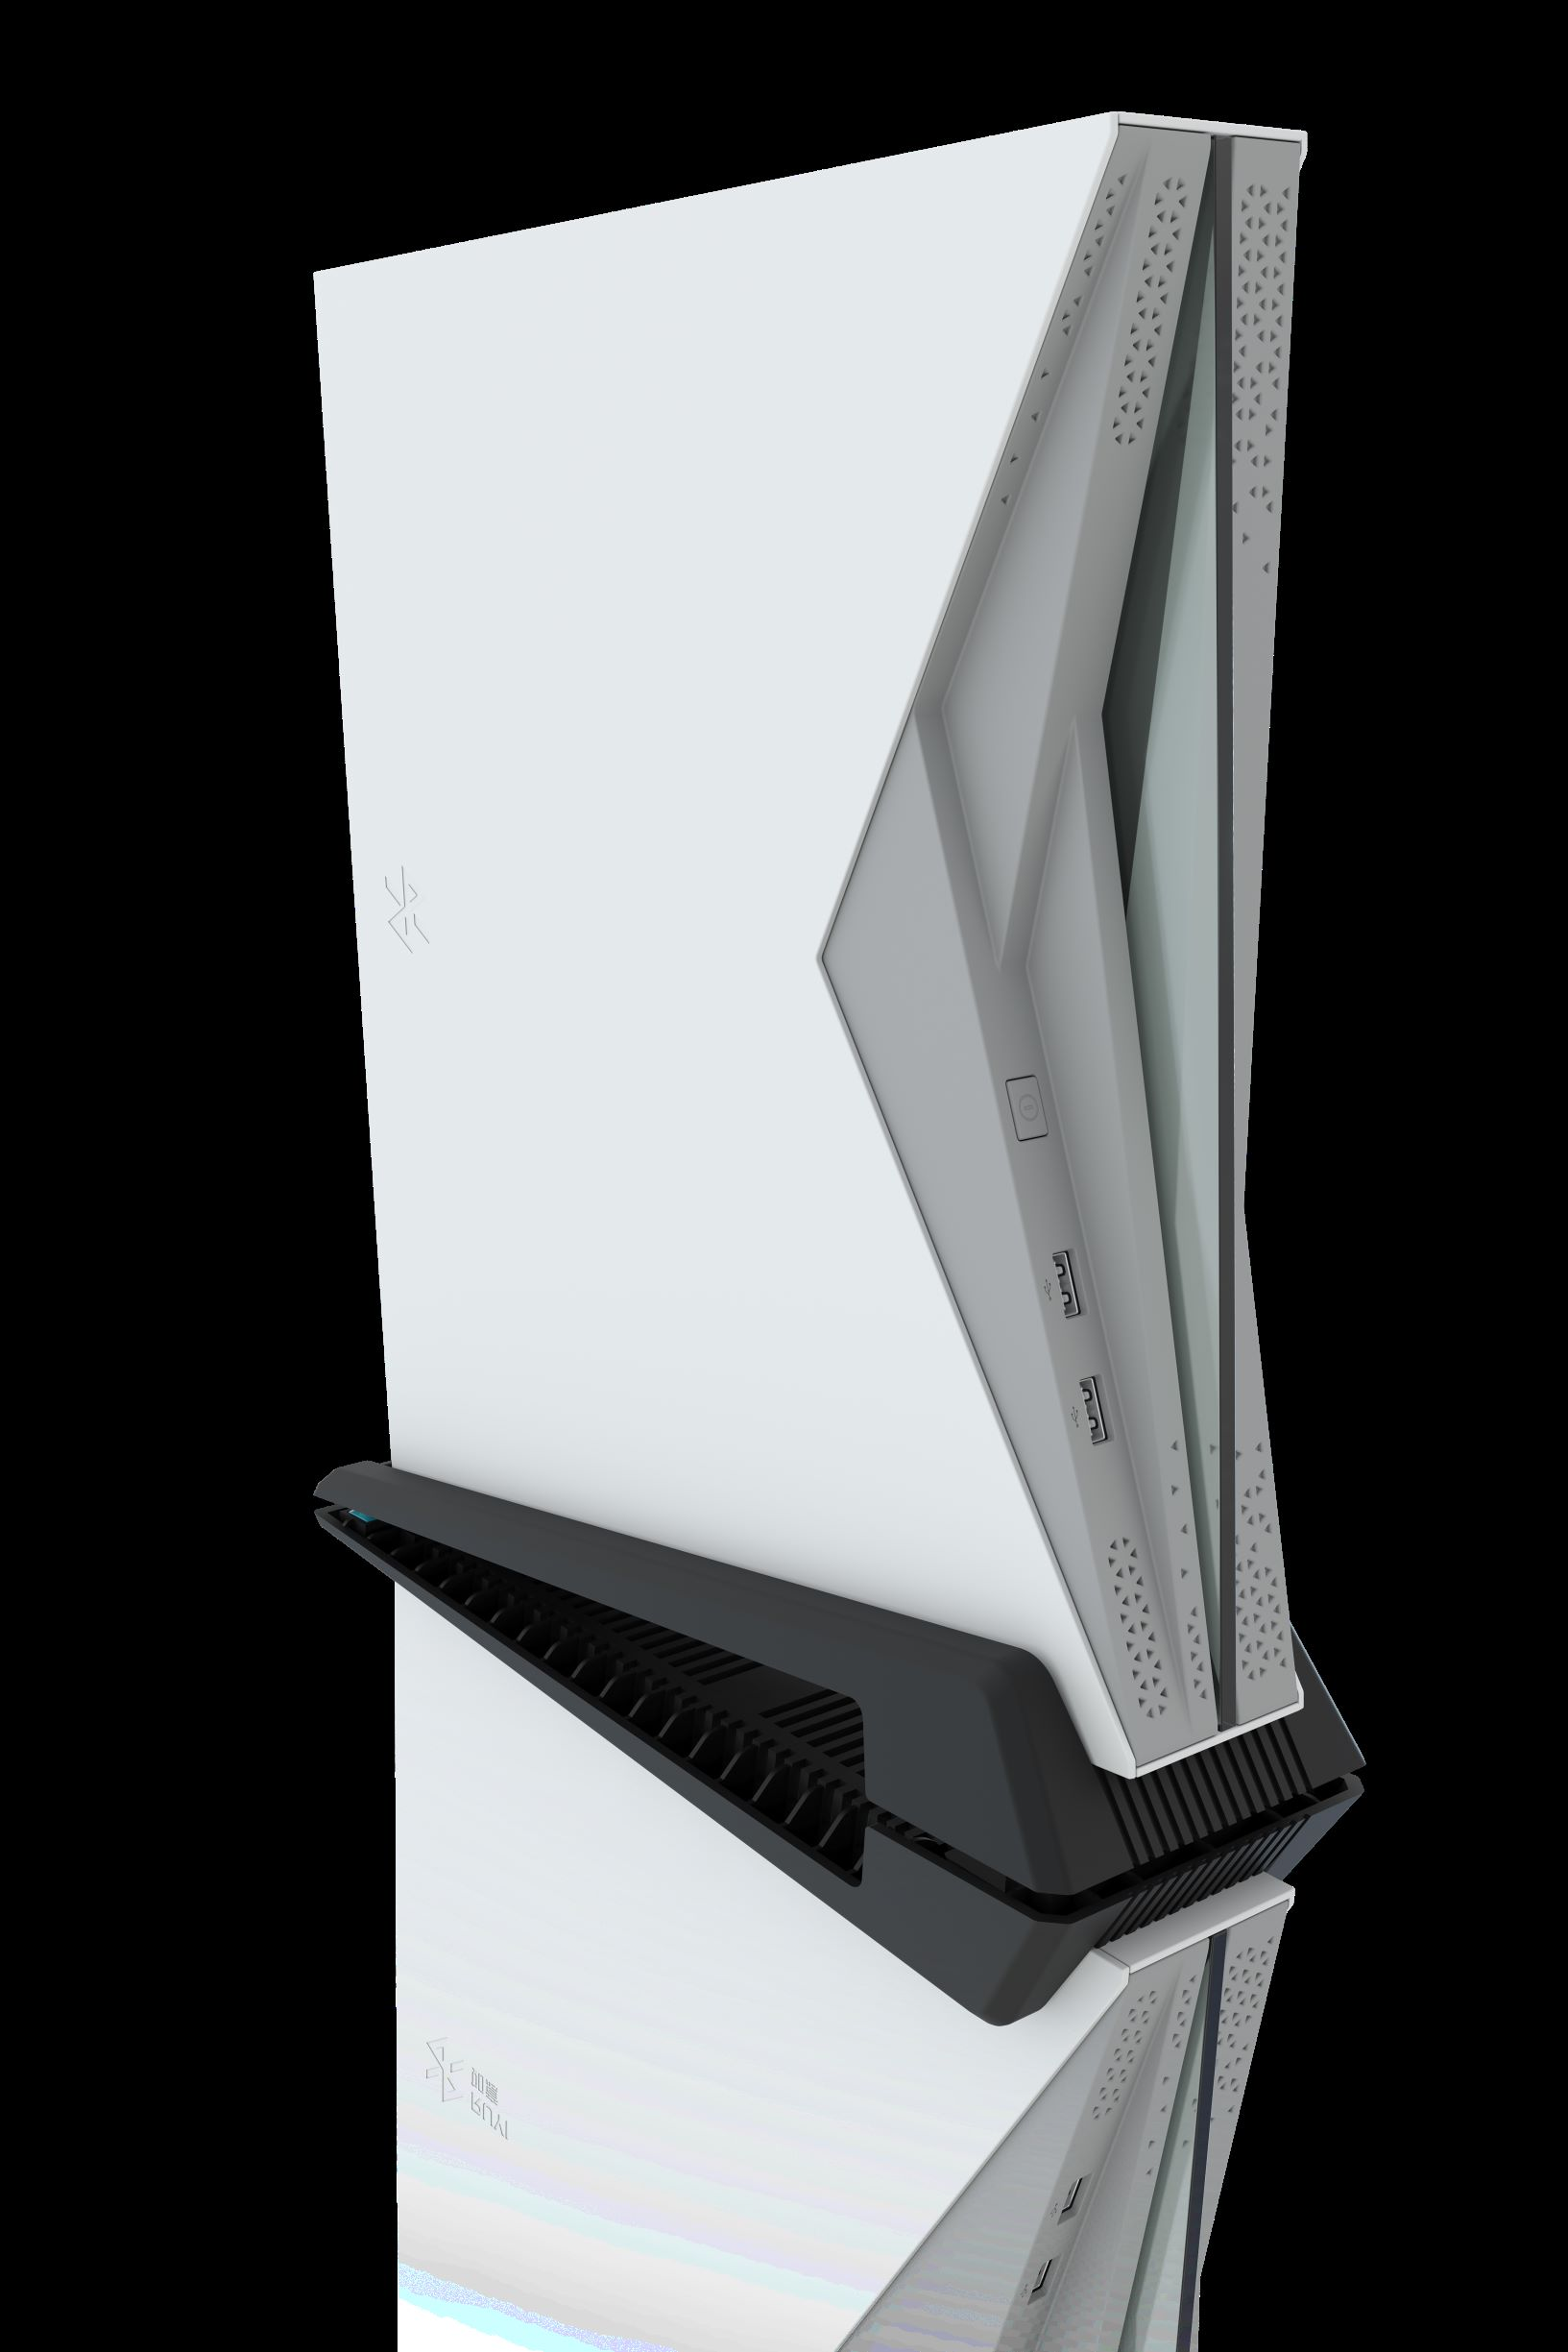 The console - The Zhongshan Subor console shown at ChinaJoy